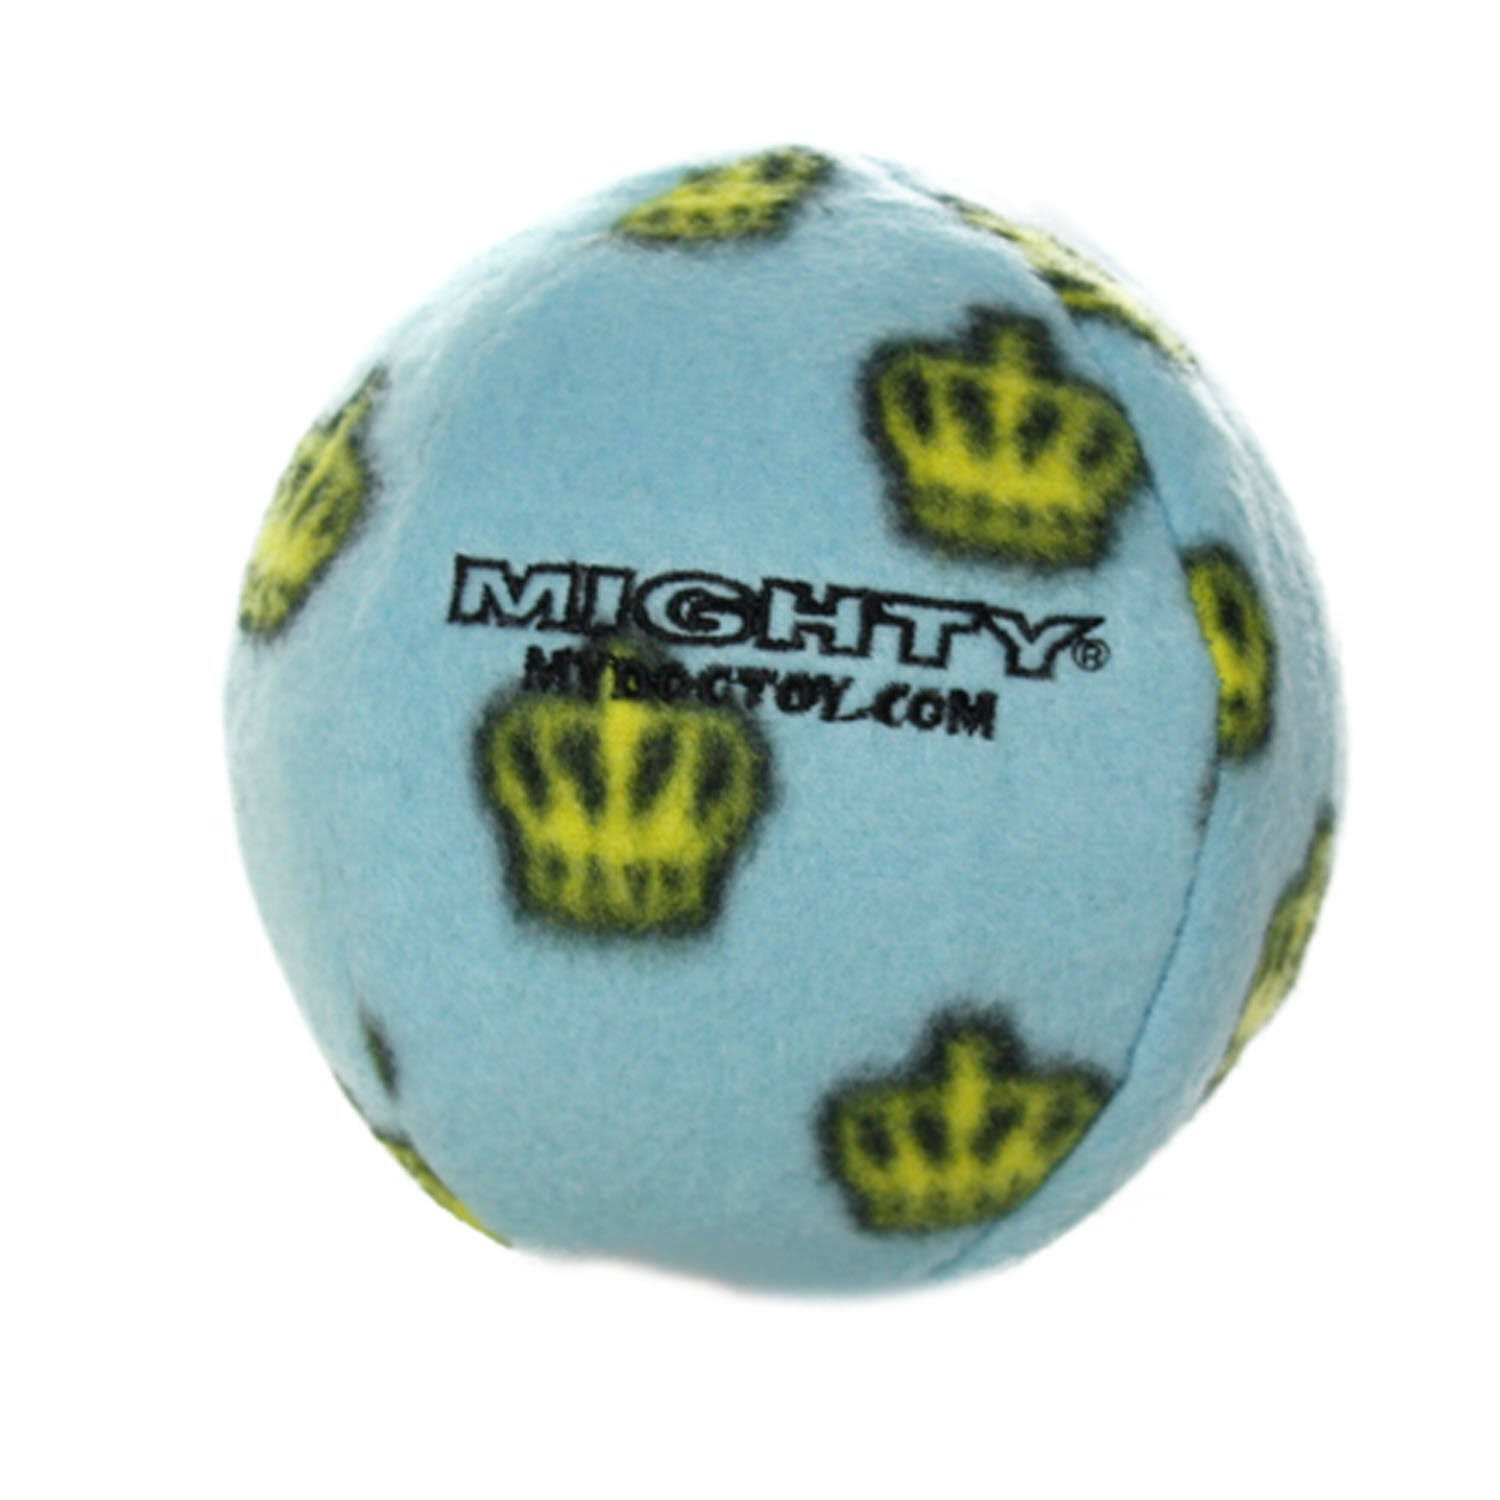 VIP Products Mighty Ball Dog Toy - Medium, Blue